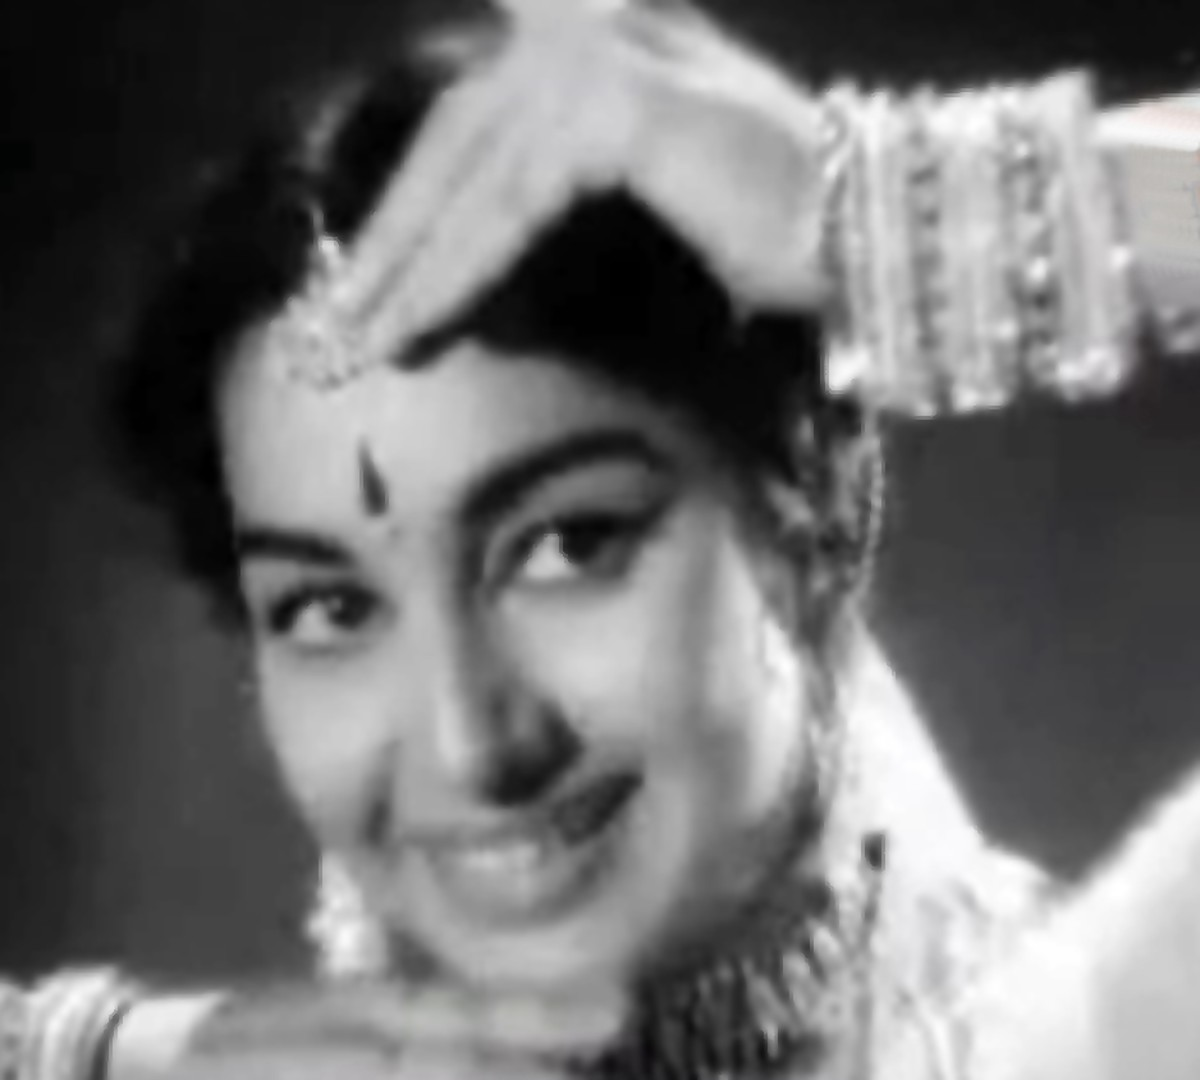 A great number from Mohammed Rafi, based on Raga Bhairavi, featured in the movie on Ashok Kumar (as an ugly singer trying to hide his face by dim lighting) and a scintillating dance performance by Asha Parekh - probably her best!